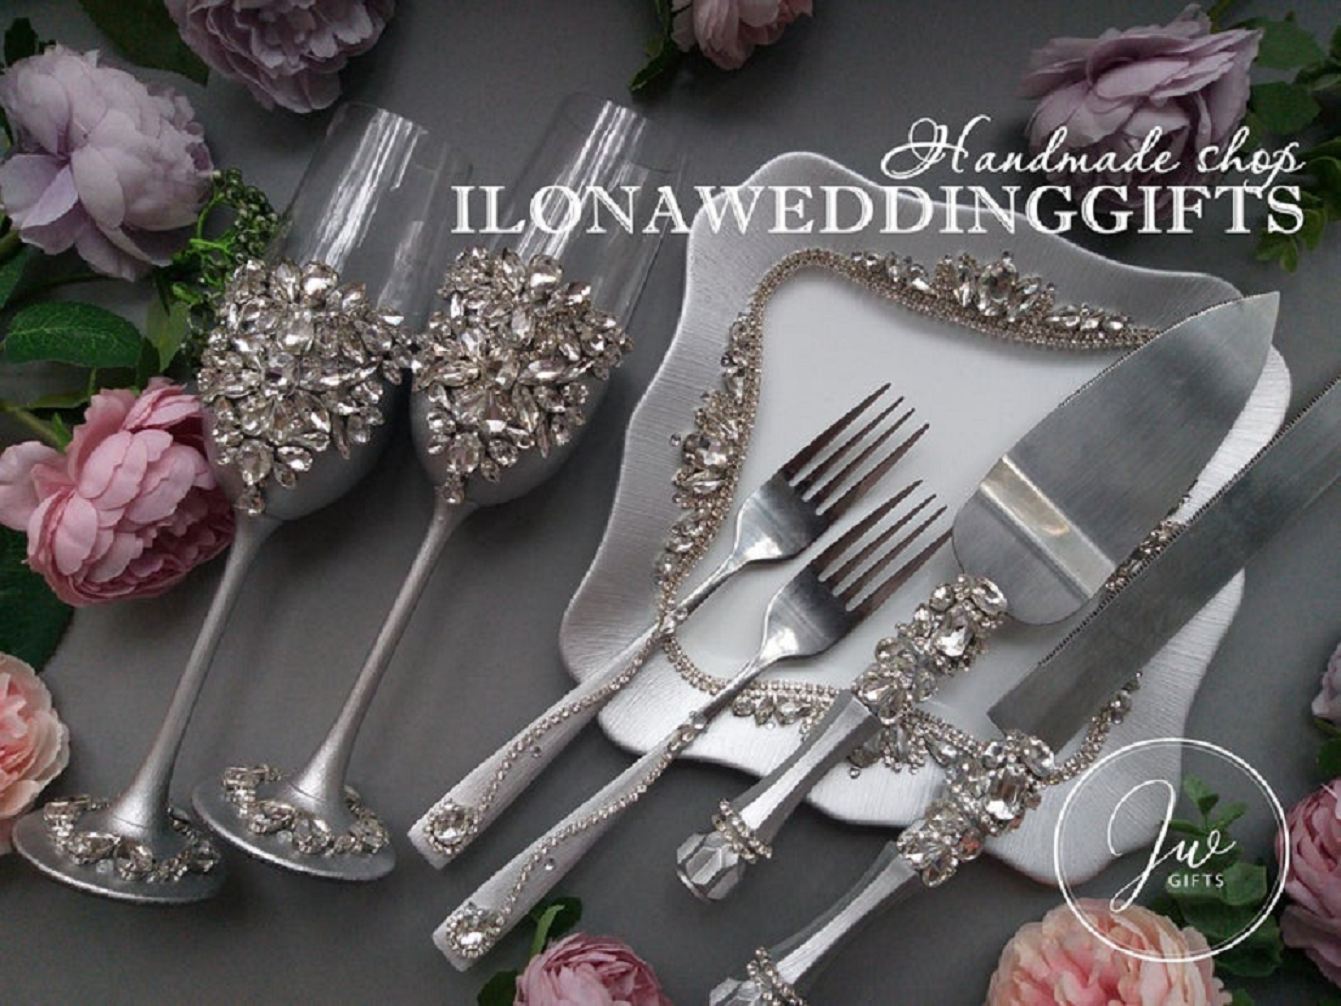 Bling wedding receptions Silver Toasting Flutes, Cake Server Knife and Plate with Swarovski Crystal Gems